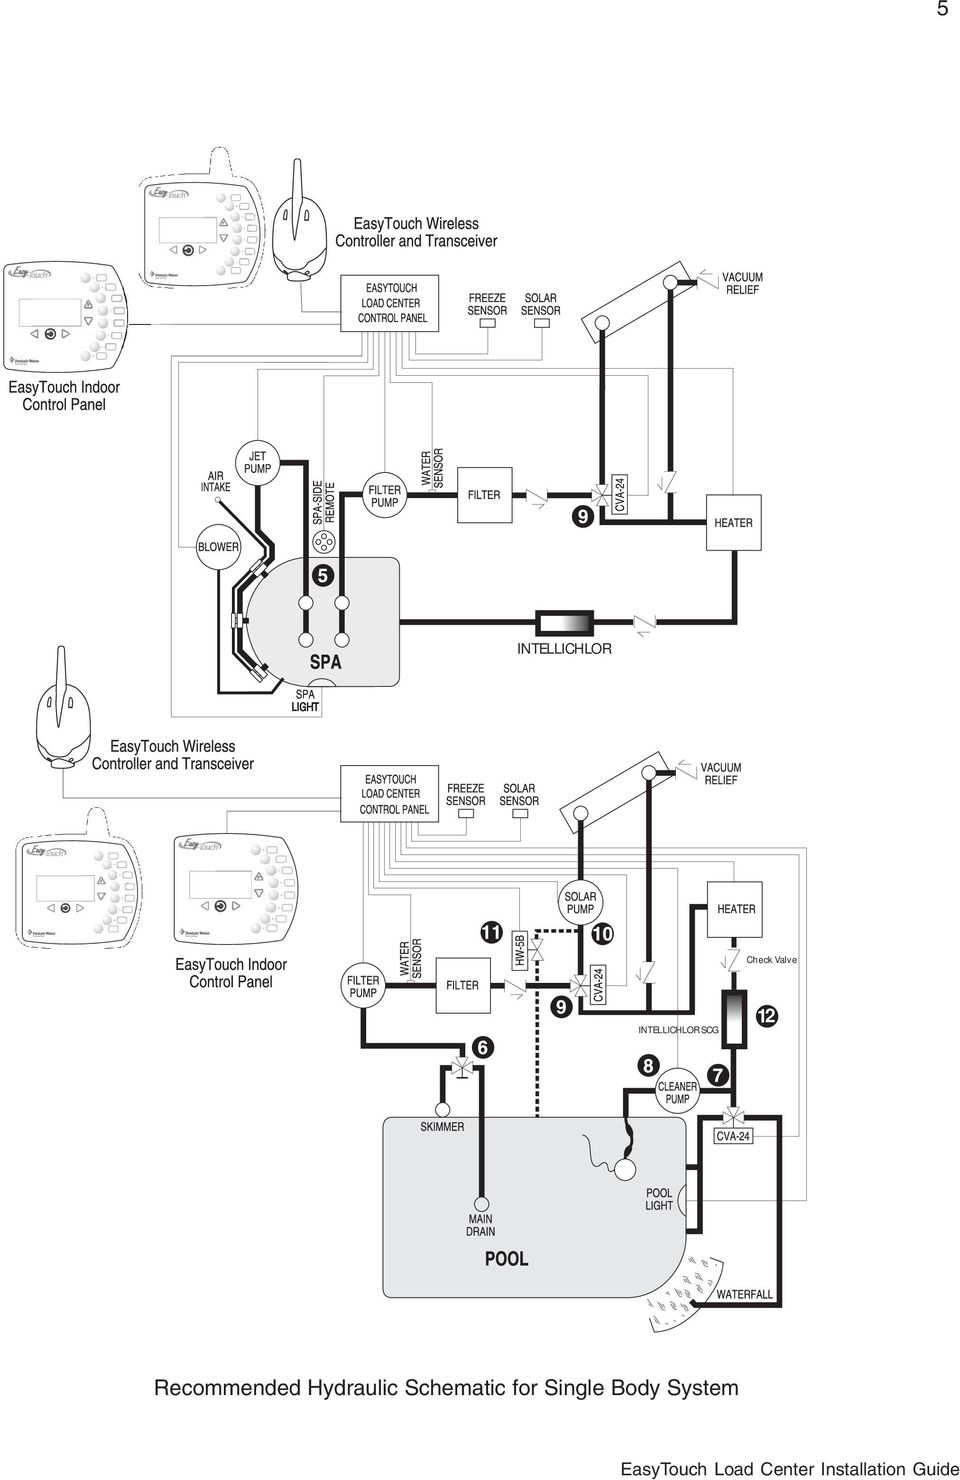 Easytouch 8 And 4 Pool Spa Control System With Optional Pentair Plumbing Diagram Free Download Wiring Schematic Recommended Hydraulic